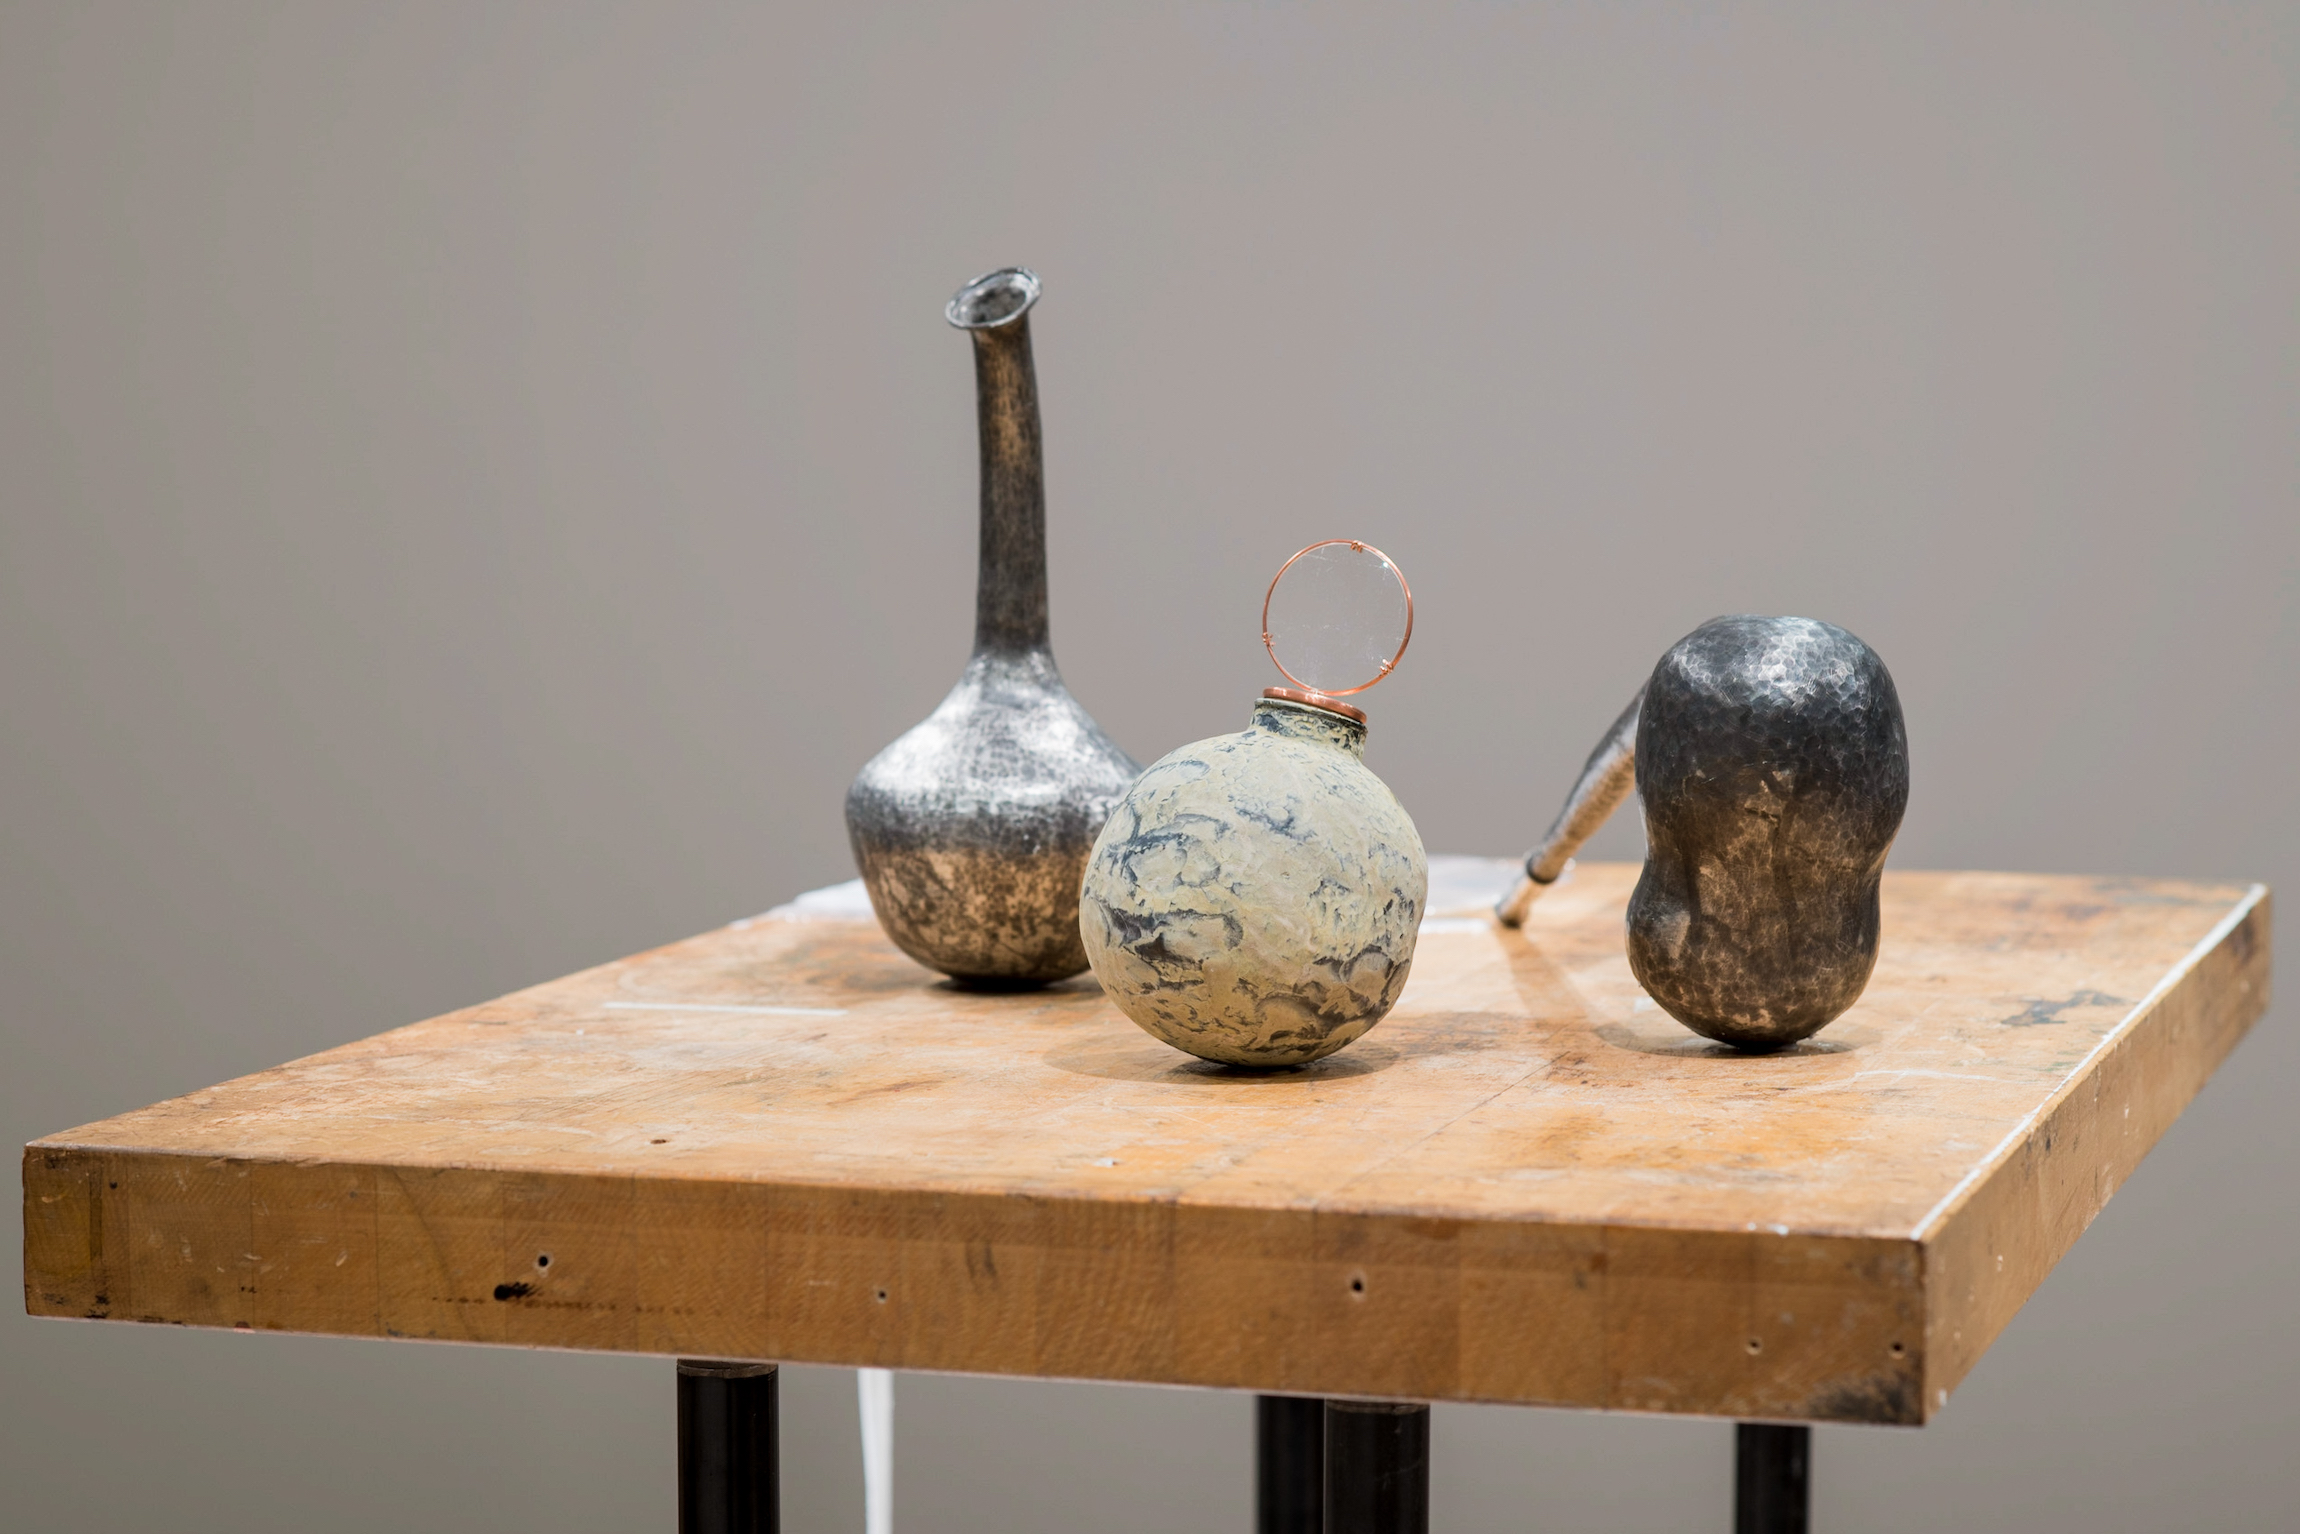 """Labware,"" 2018-2019, Pewter, copper, magnifying lens, silicone. Metalsmithing art from Chloe Darke's Master of Fine Arts exhibition Secrete, Augment, Testify at the Chazen Museum of Art, University of Wisconsin-Madison. Photography by Kyle Herrera."